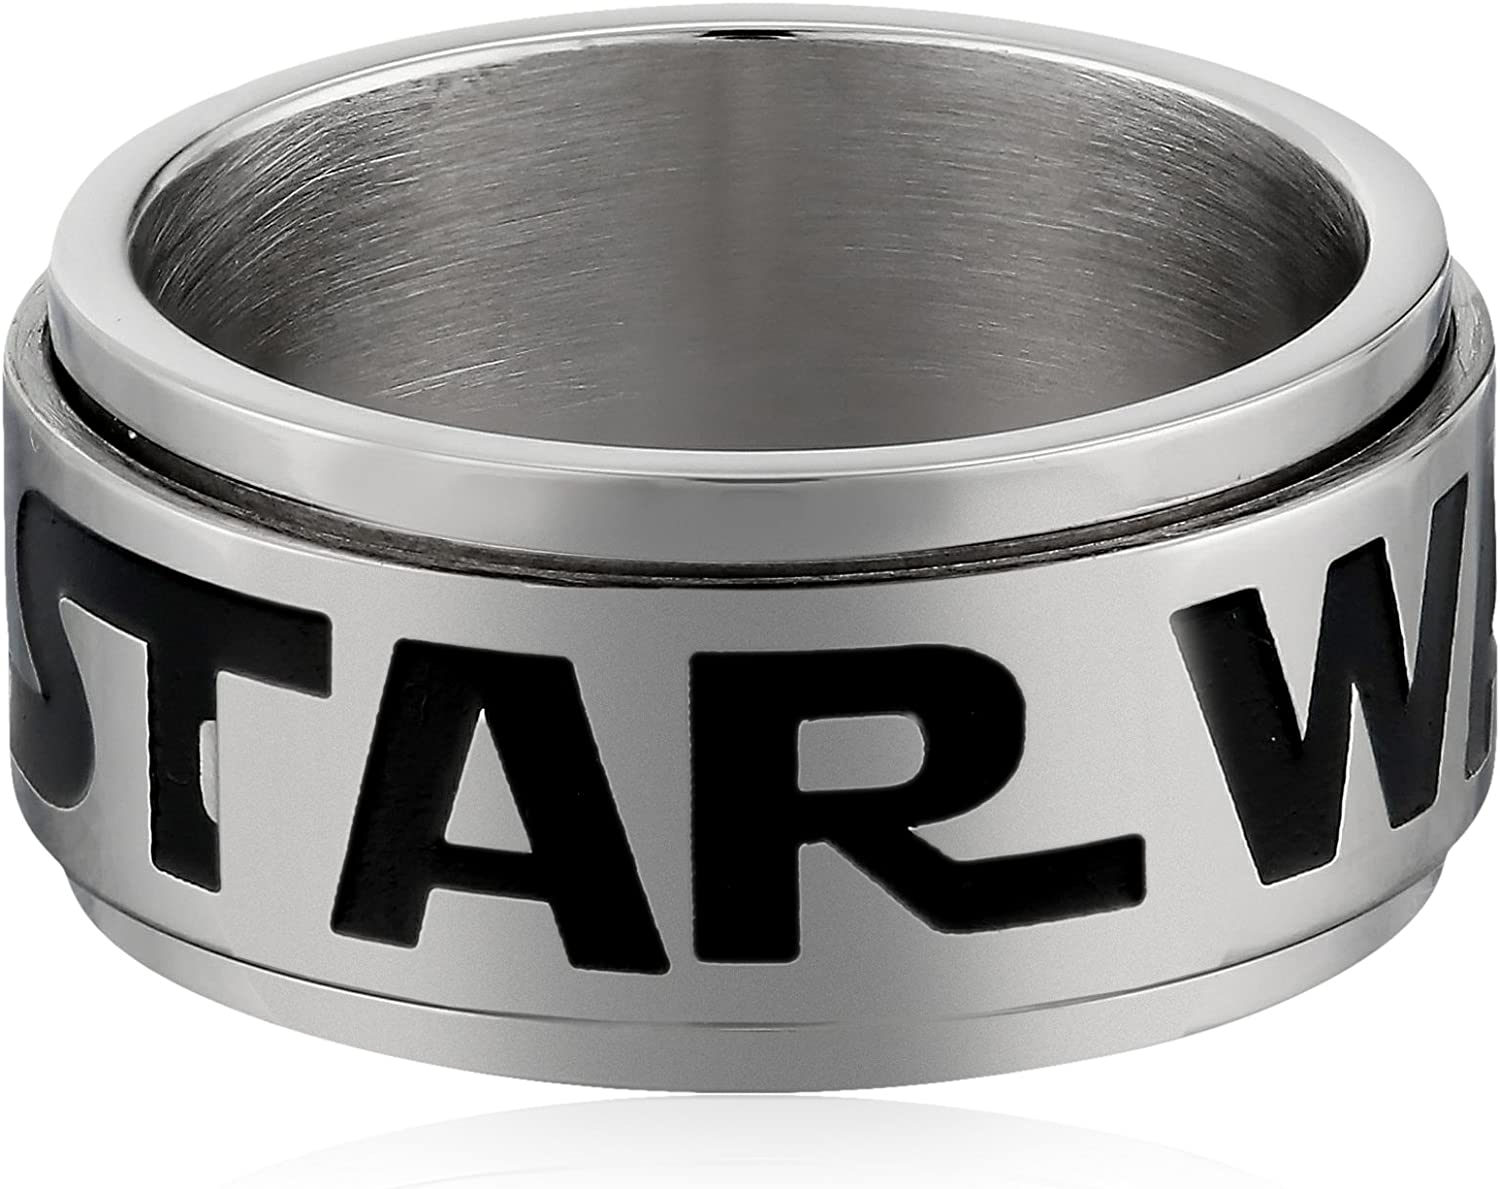 Star Wars Jewelry Men's Logo of Star Wars Stainless Steel Spinner Ring, Size 10